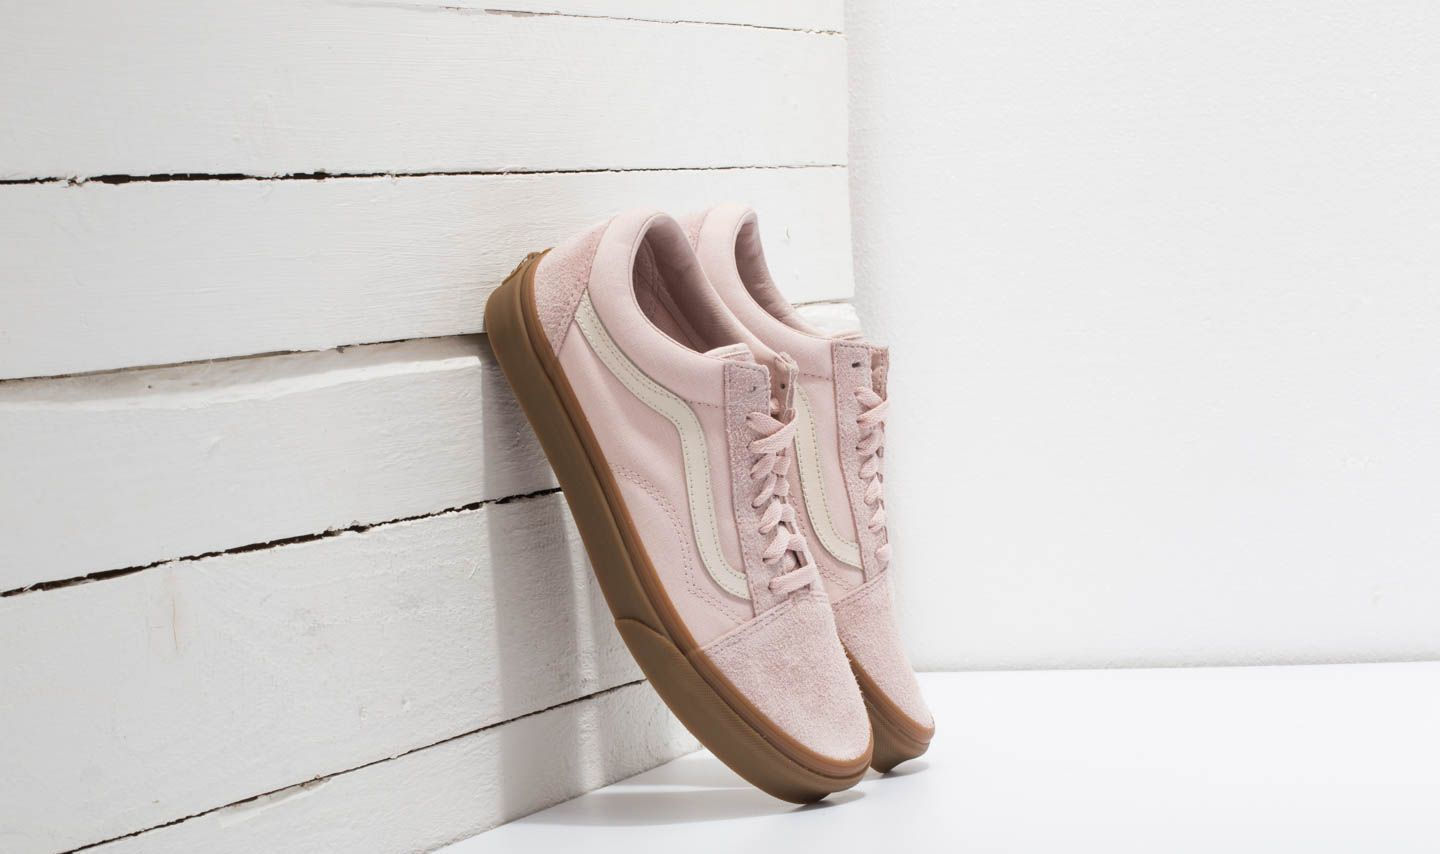 Vans Old Skool (Fuzzy Suede) Sepia Rose  Light Gum  da81136bd